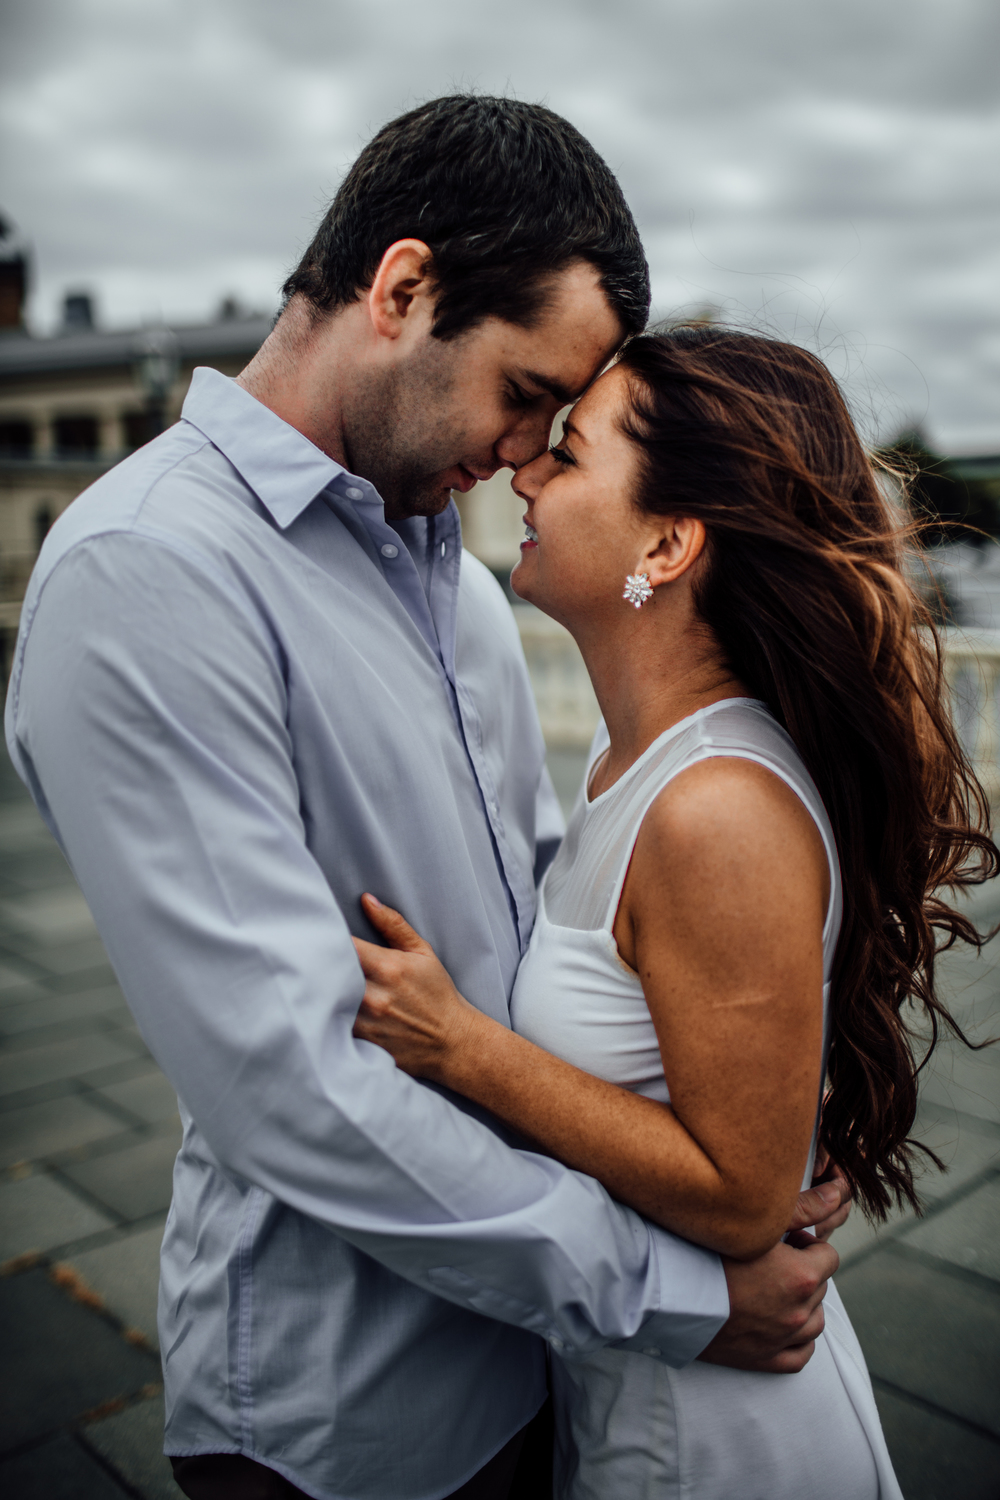 BRITTANYandKEVIN-Engagement2015 (33 of 115).jpg